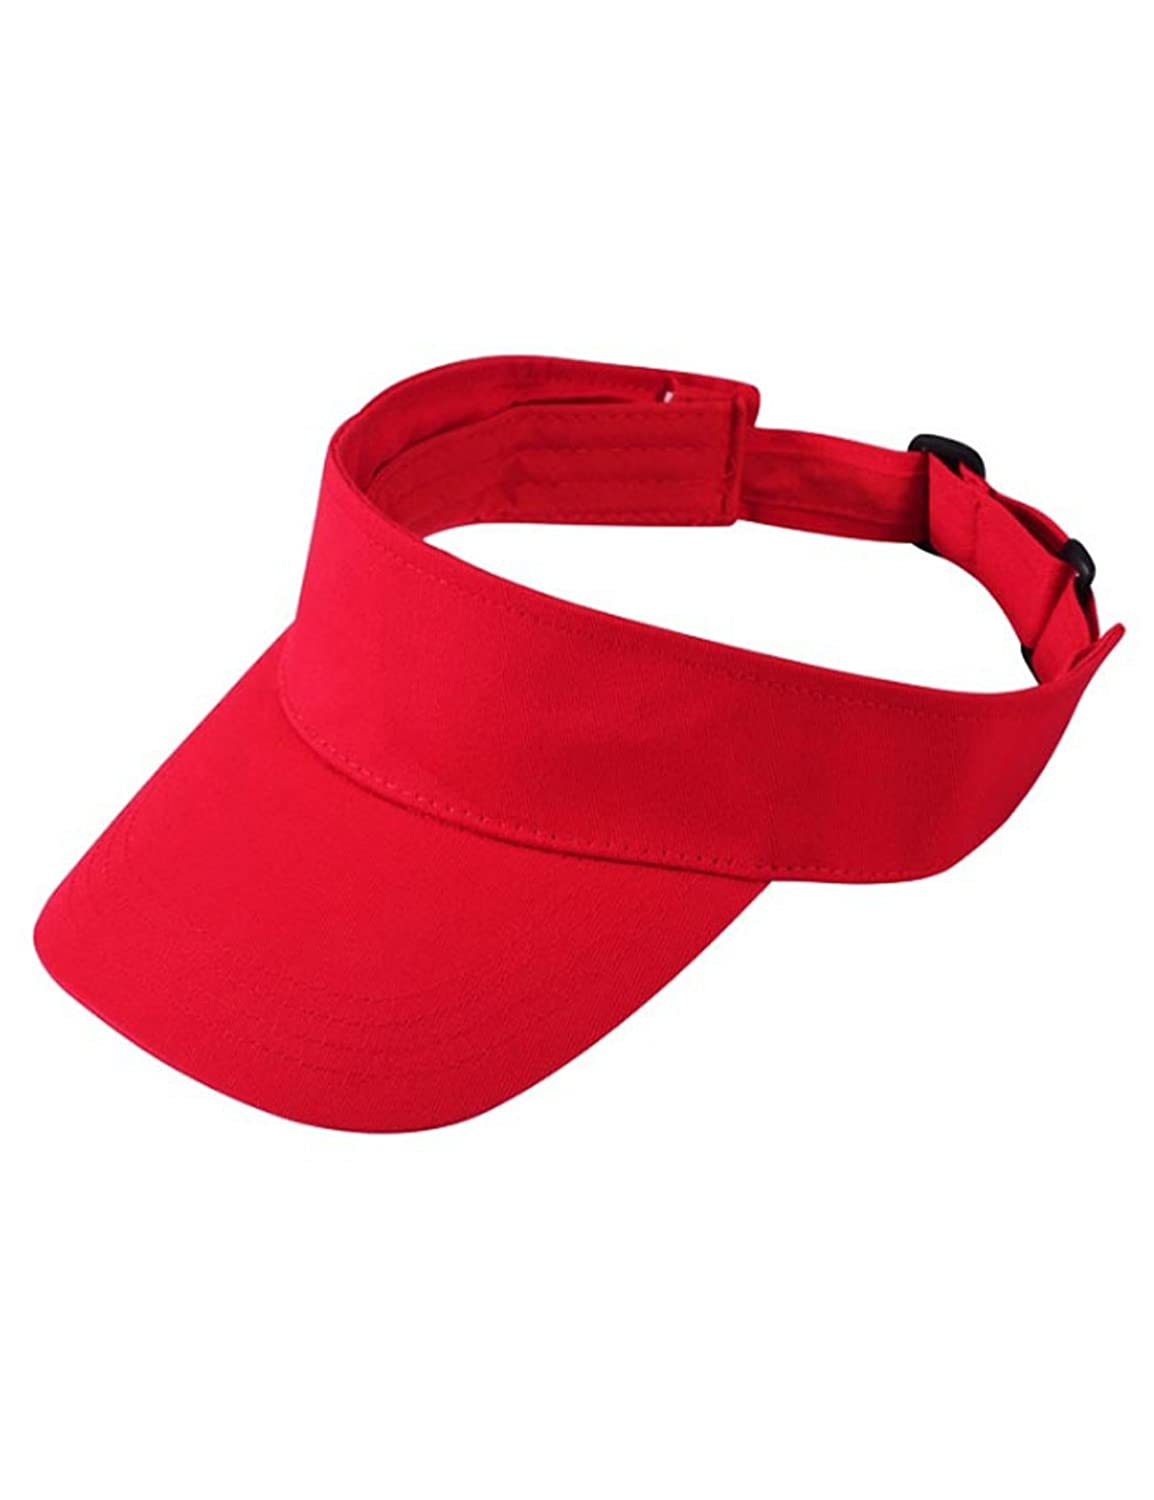 Bestgift Womens Mens Solid Colour Cotton Fashion Sports Hat Ajustable Sun Visors BSGFWJ0269-4F